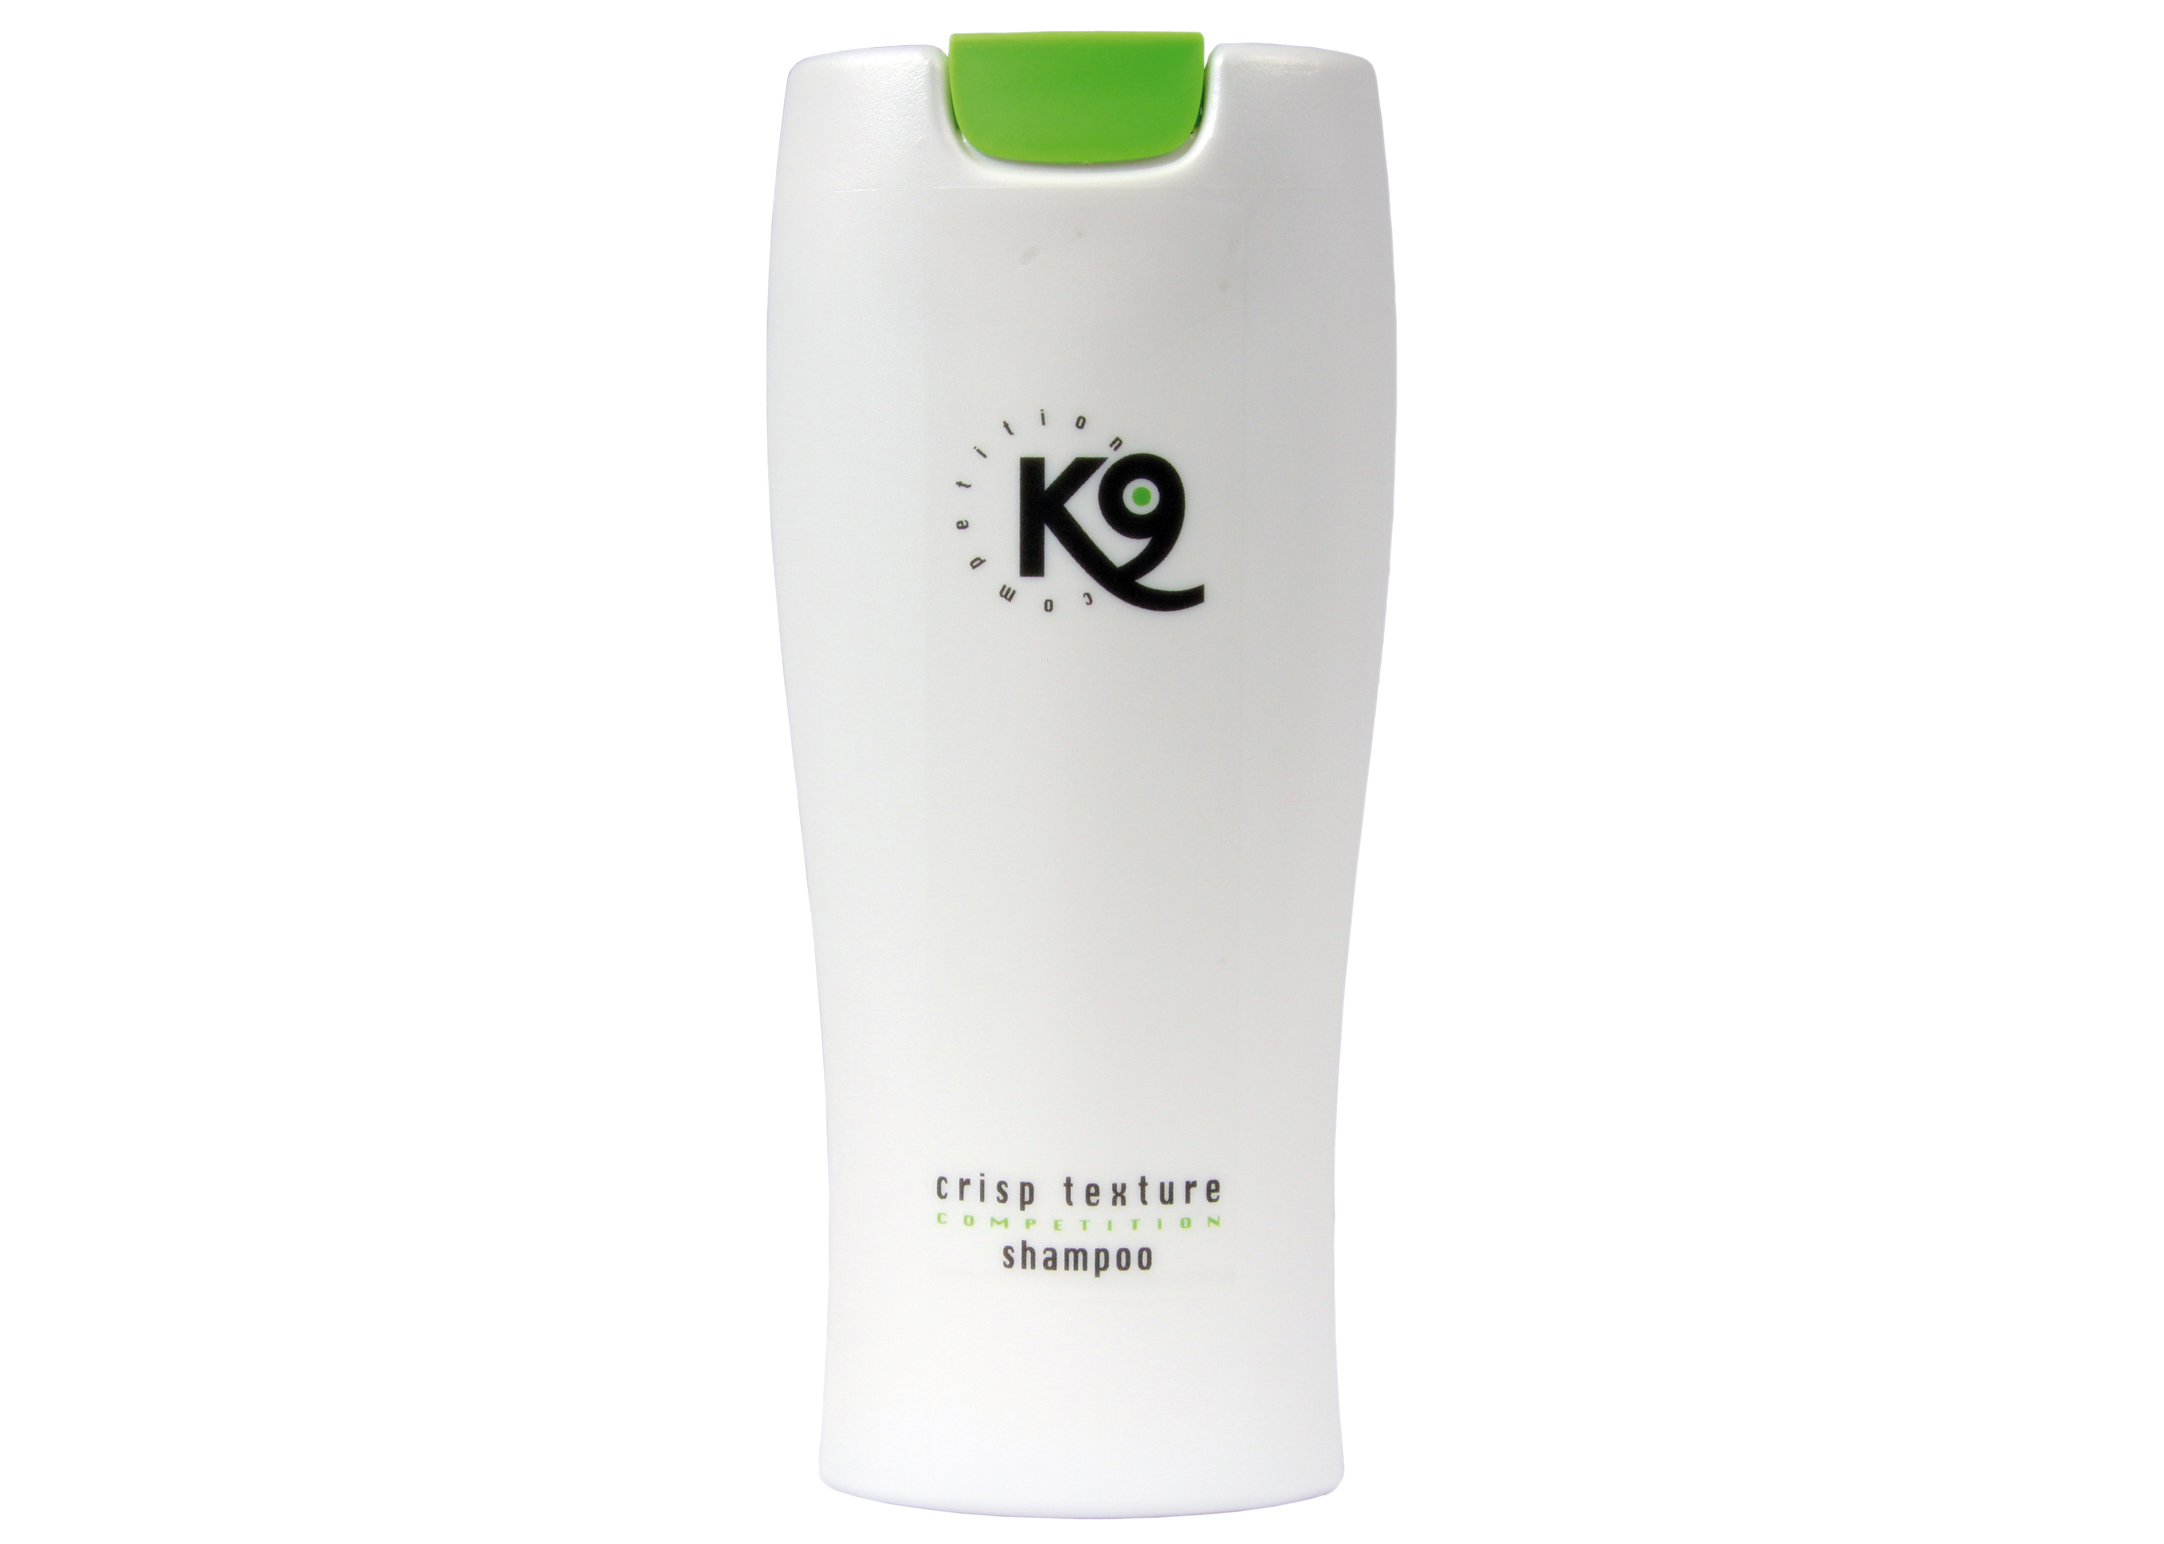 K9 Aloe Vera Crisp Texturizer Shampoo For Dogs et Cats